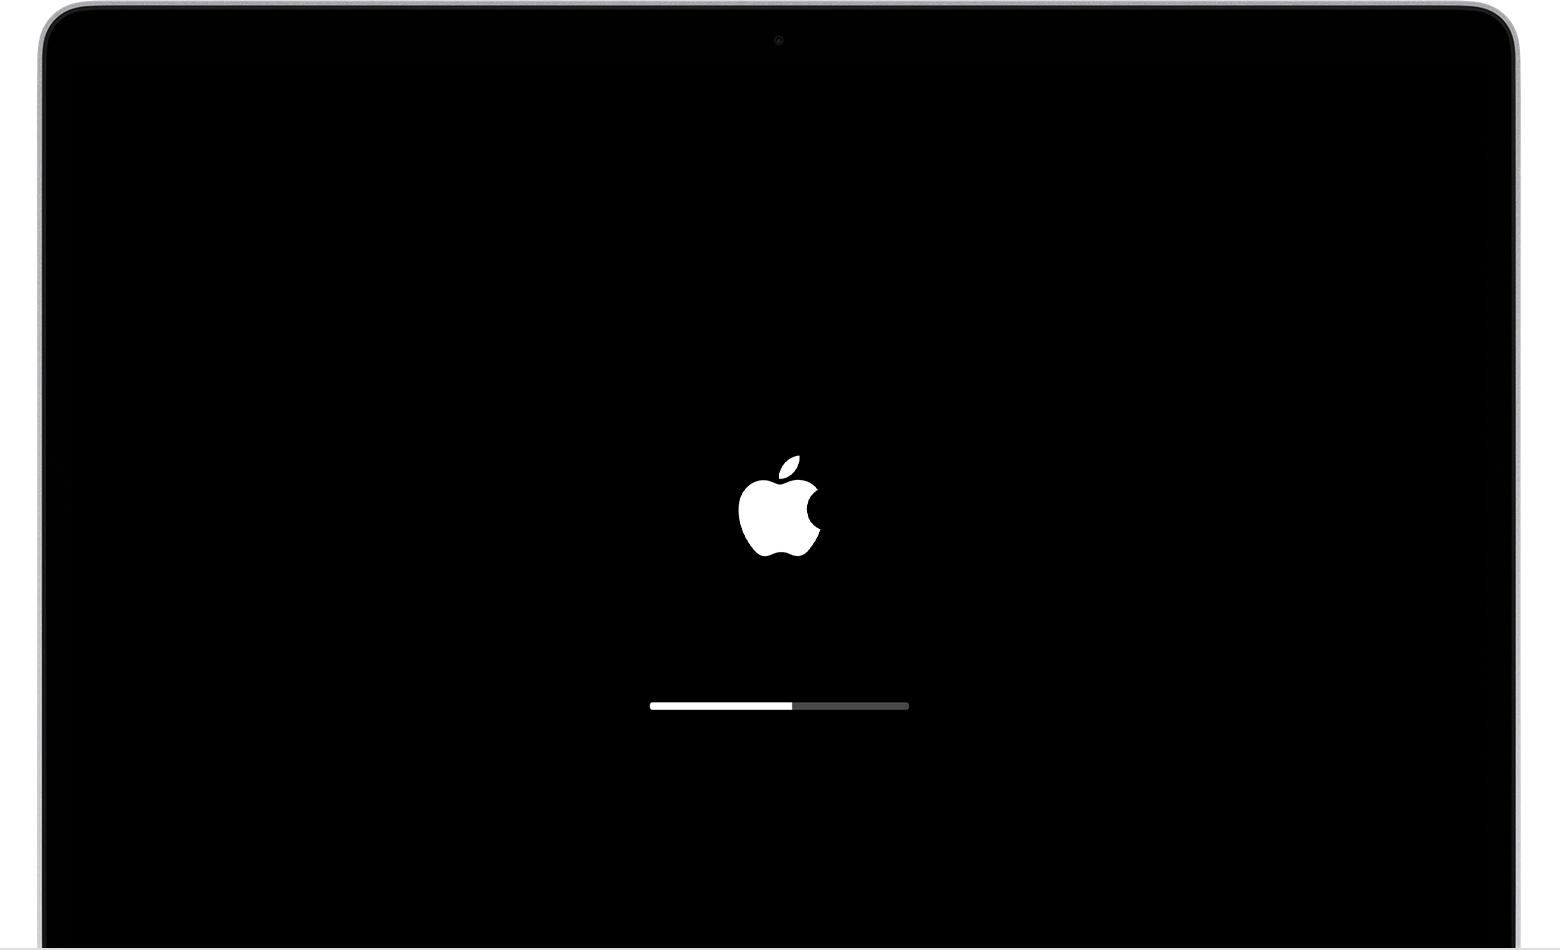 If your Mac starts up to an Apple logo or progress bar.